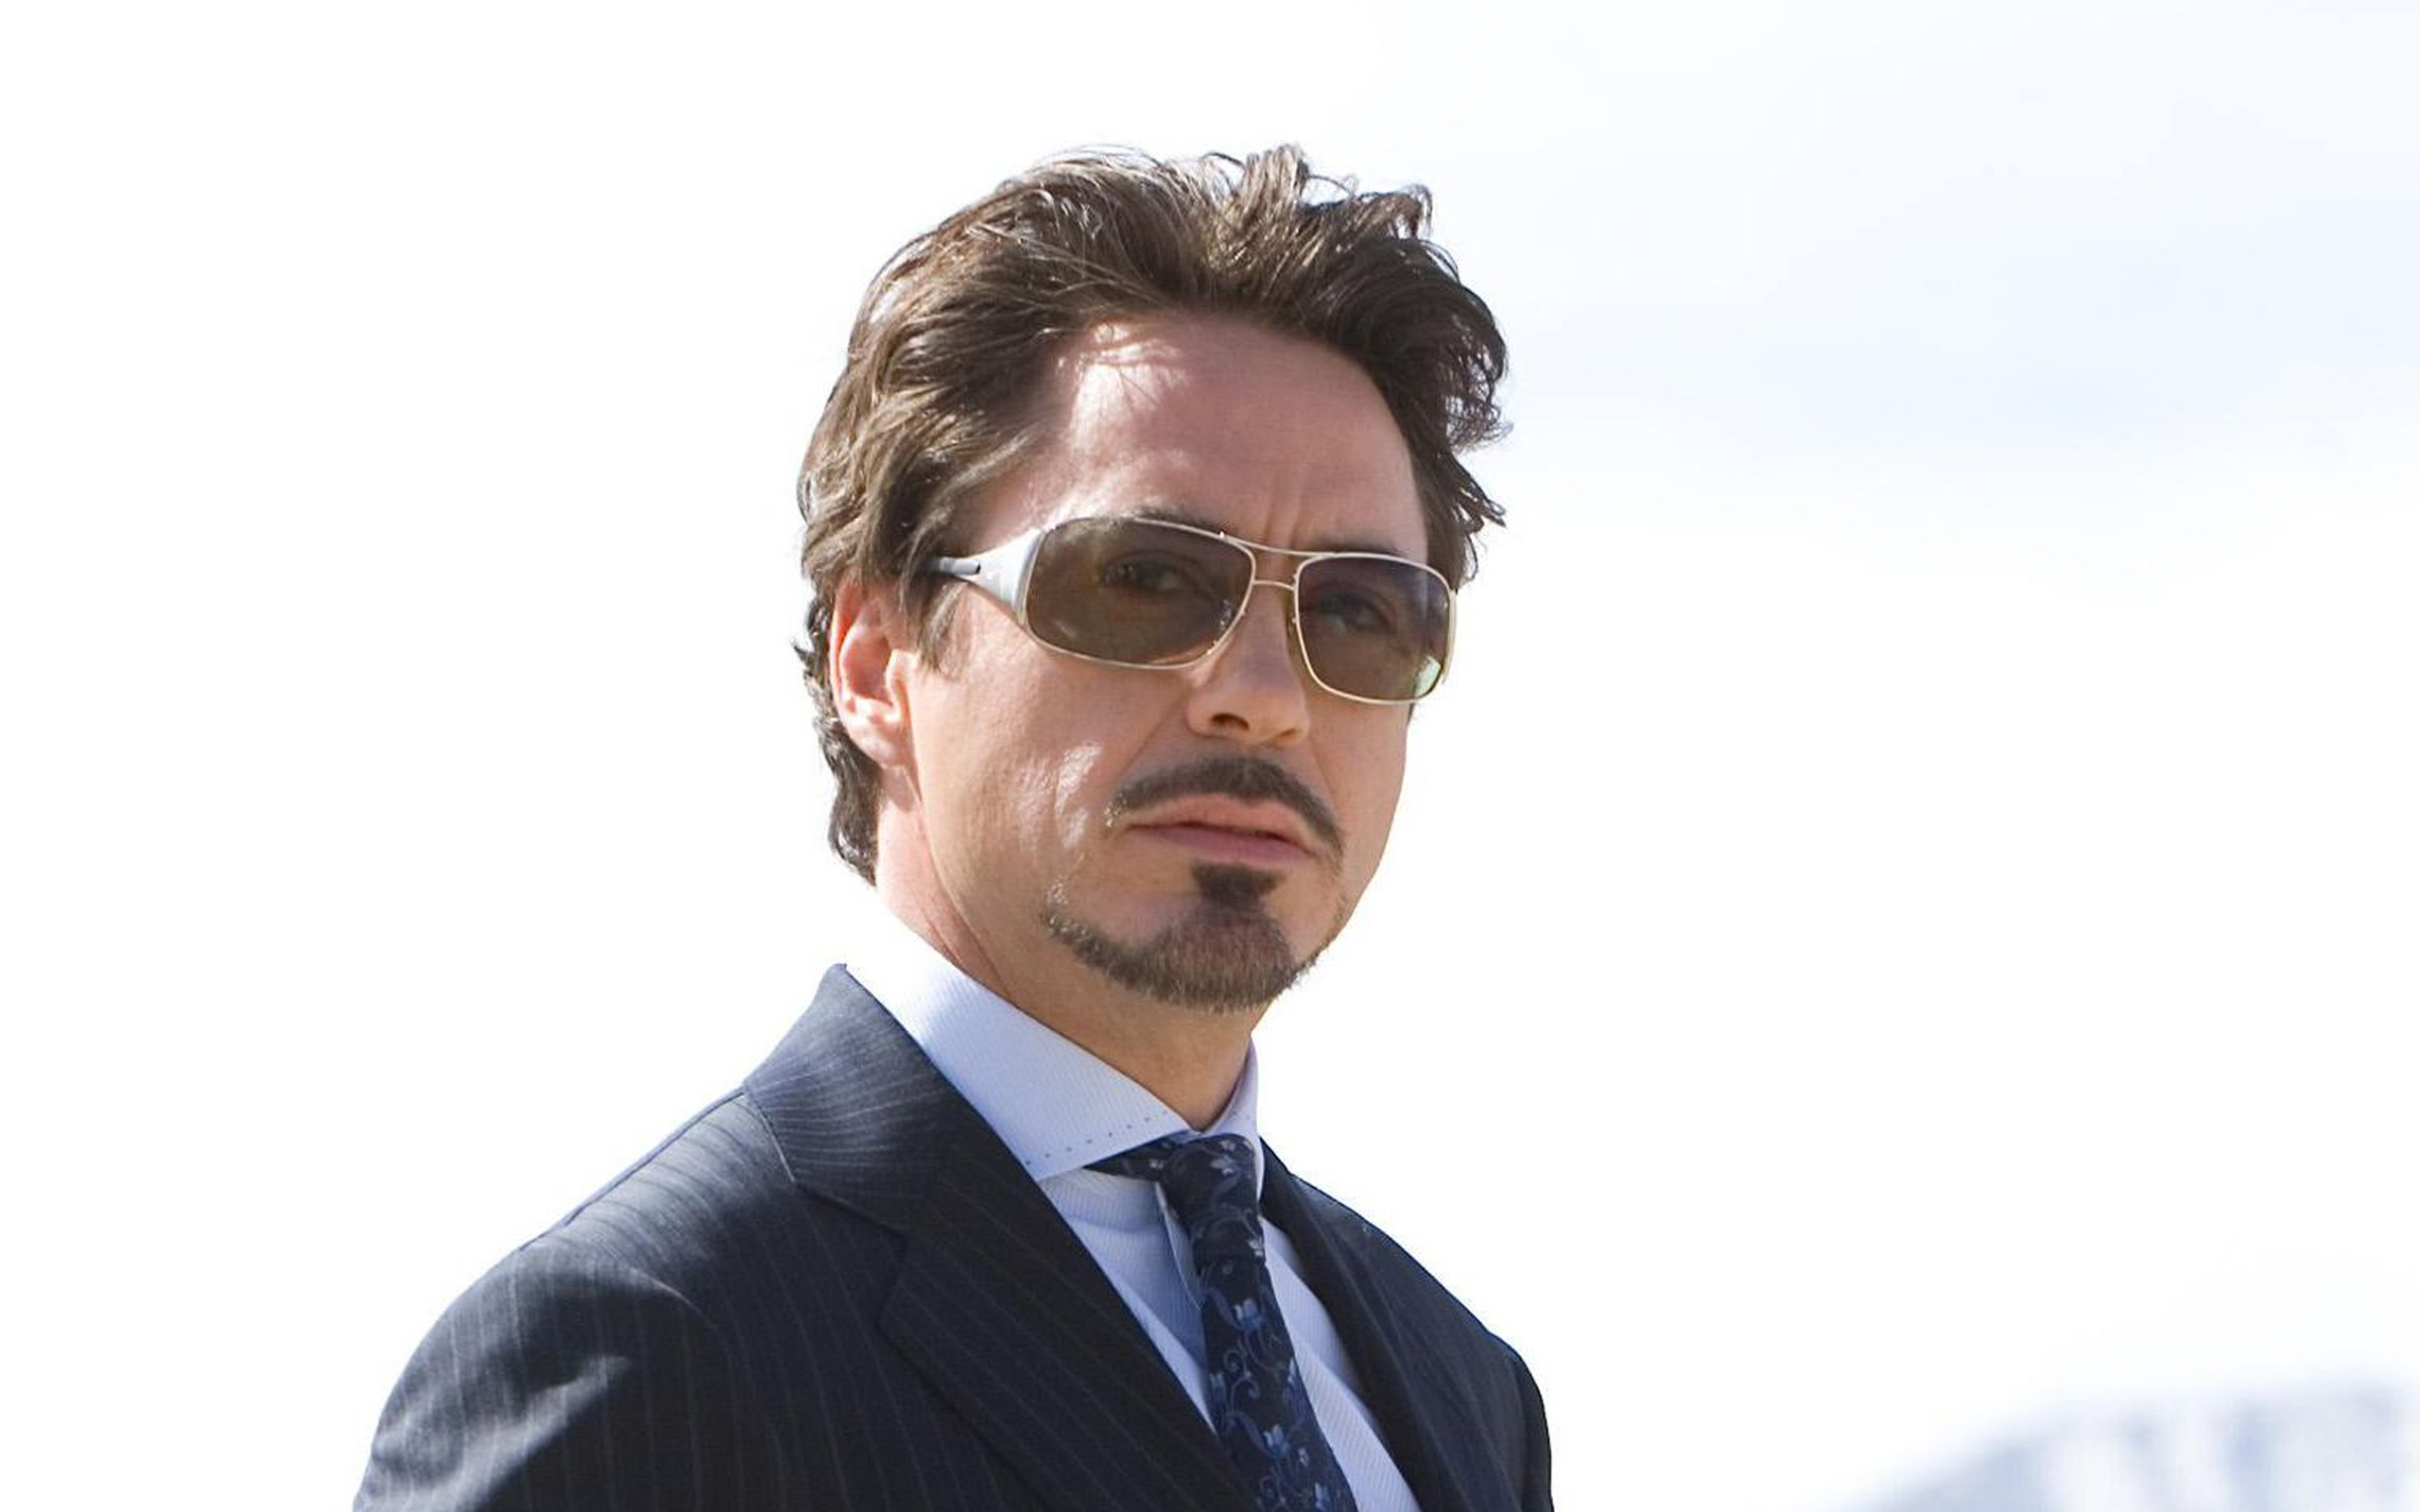 Robert Downey Jr Actor HD Wallpapers   All HD Wallpapers 2560x1600